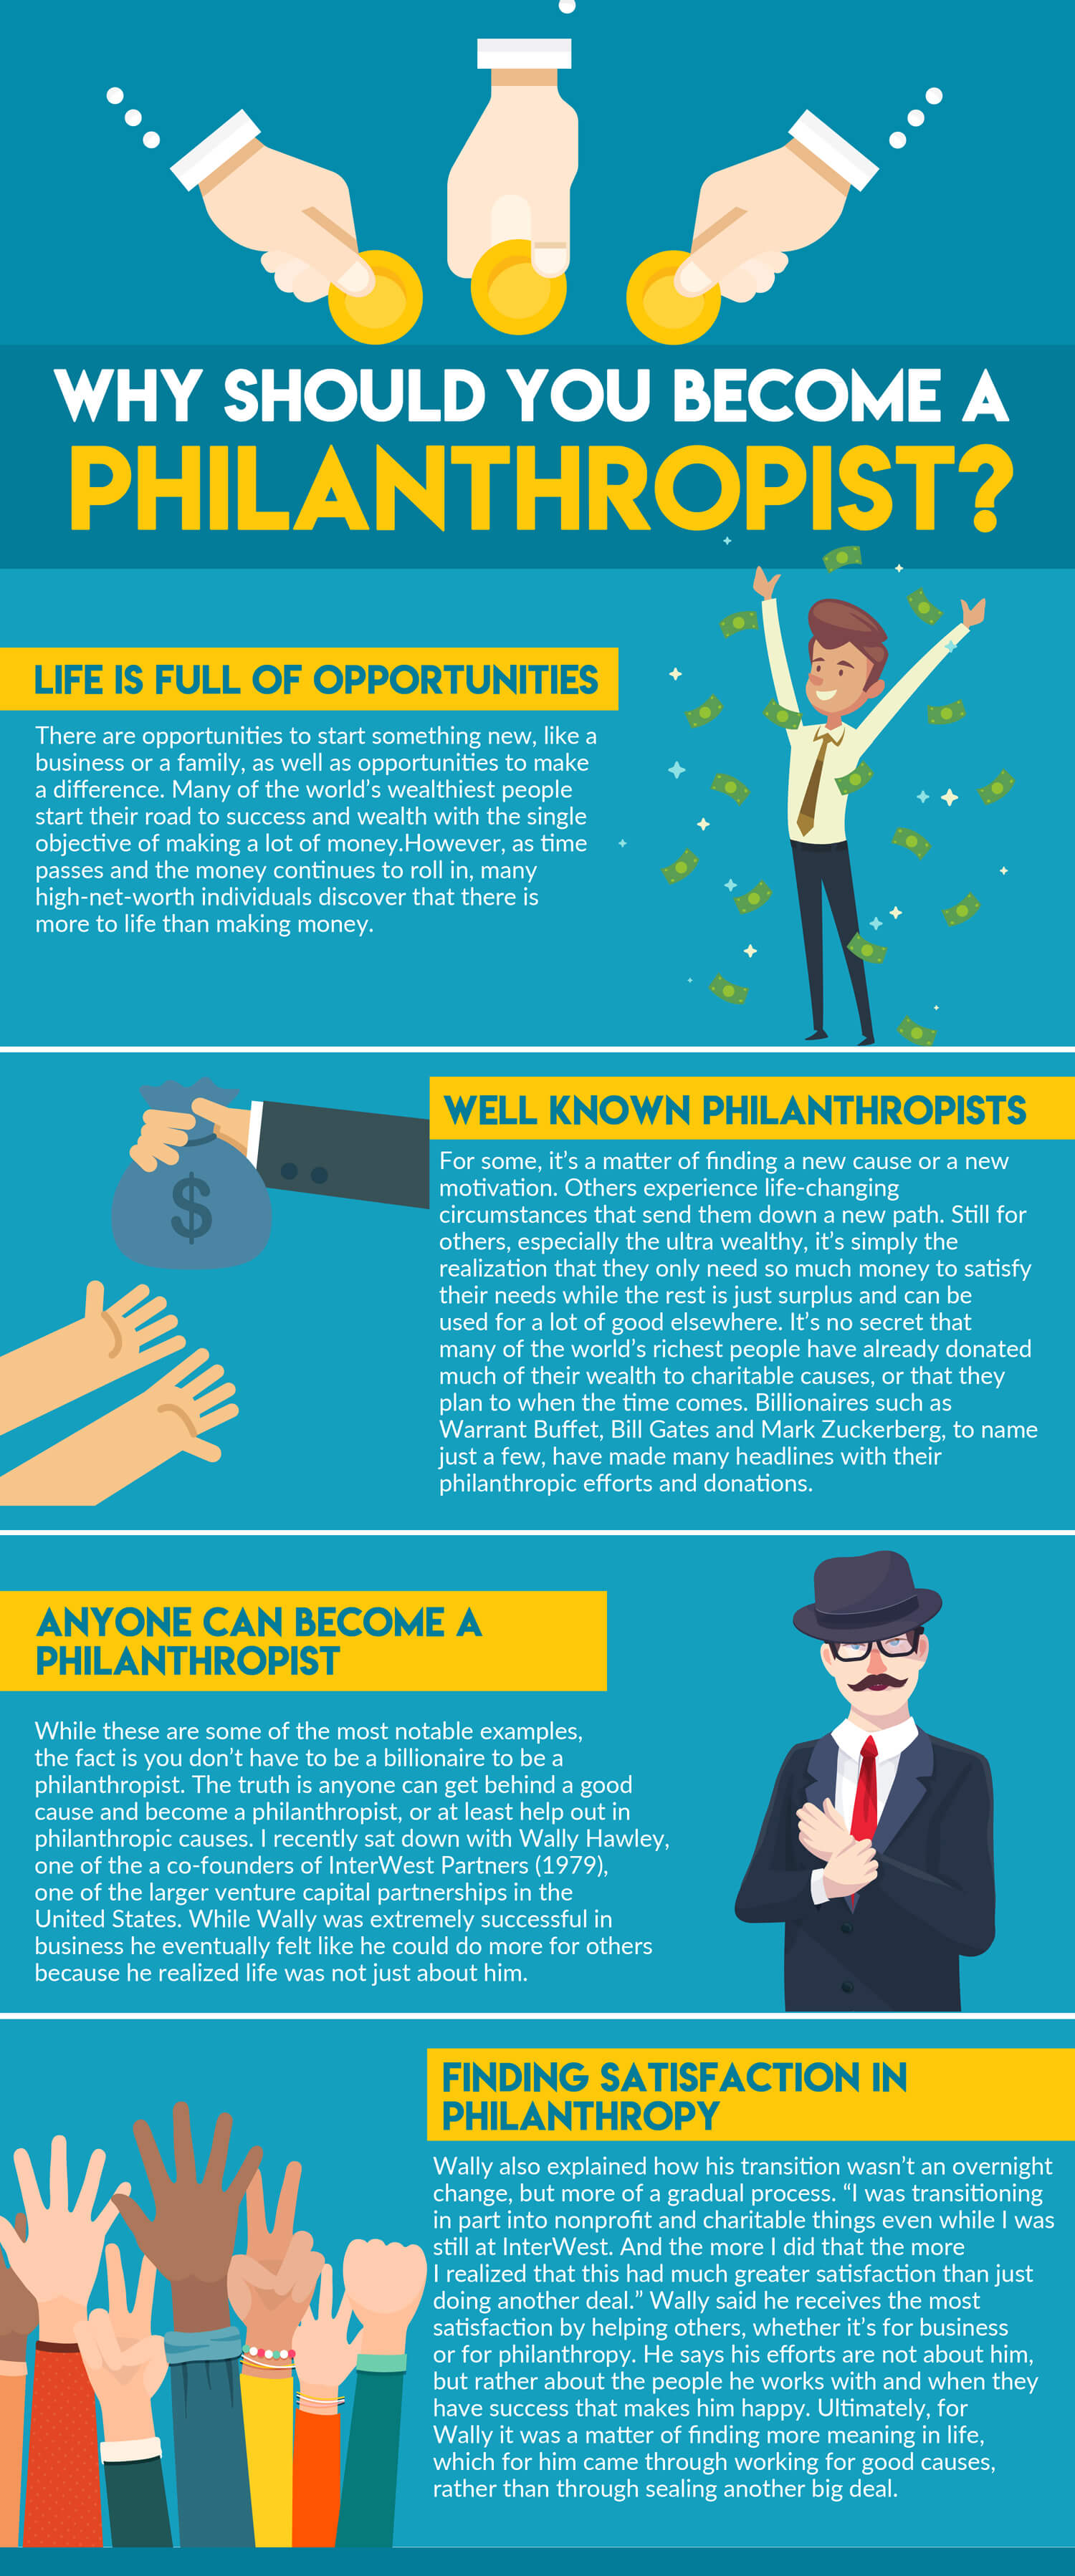 Why Should You Become A Philanthropist?